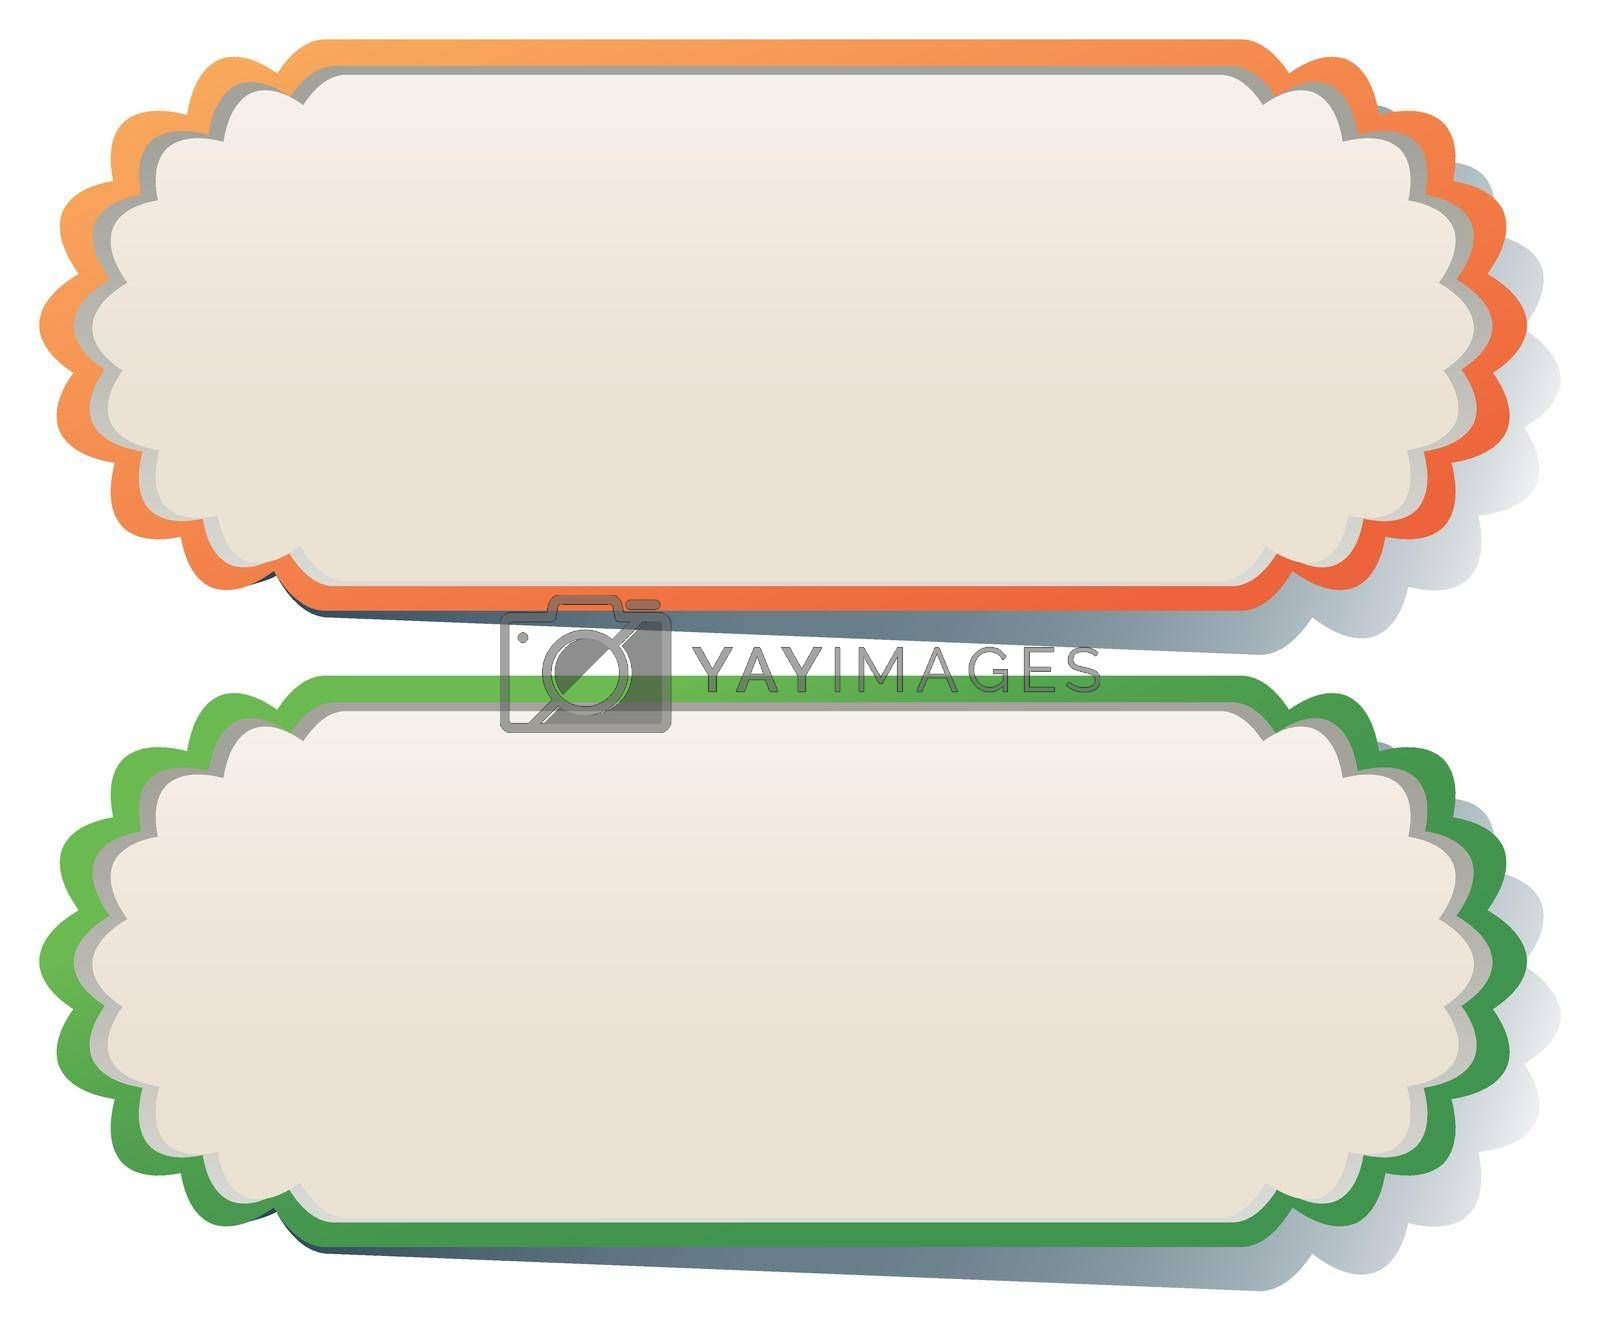 Two labels in orange and green illustration